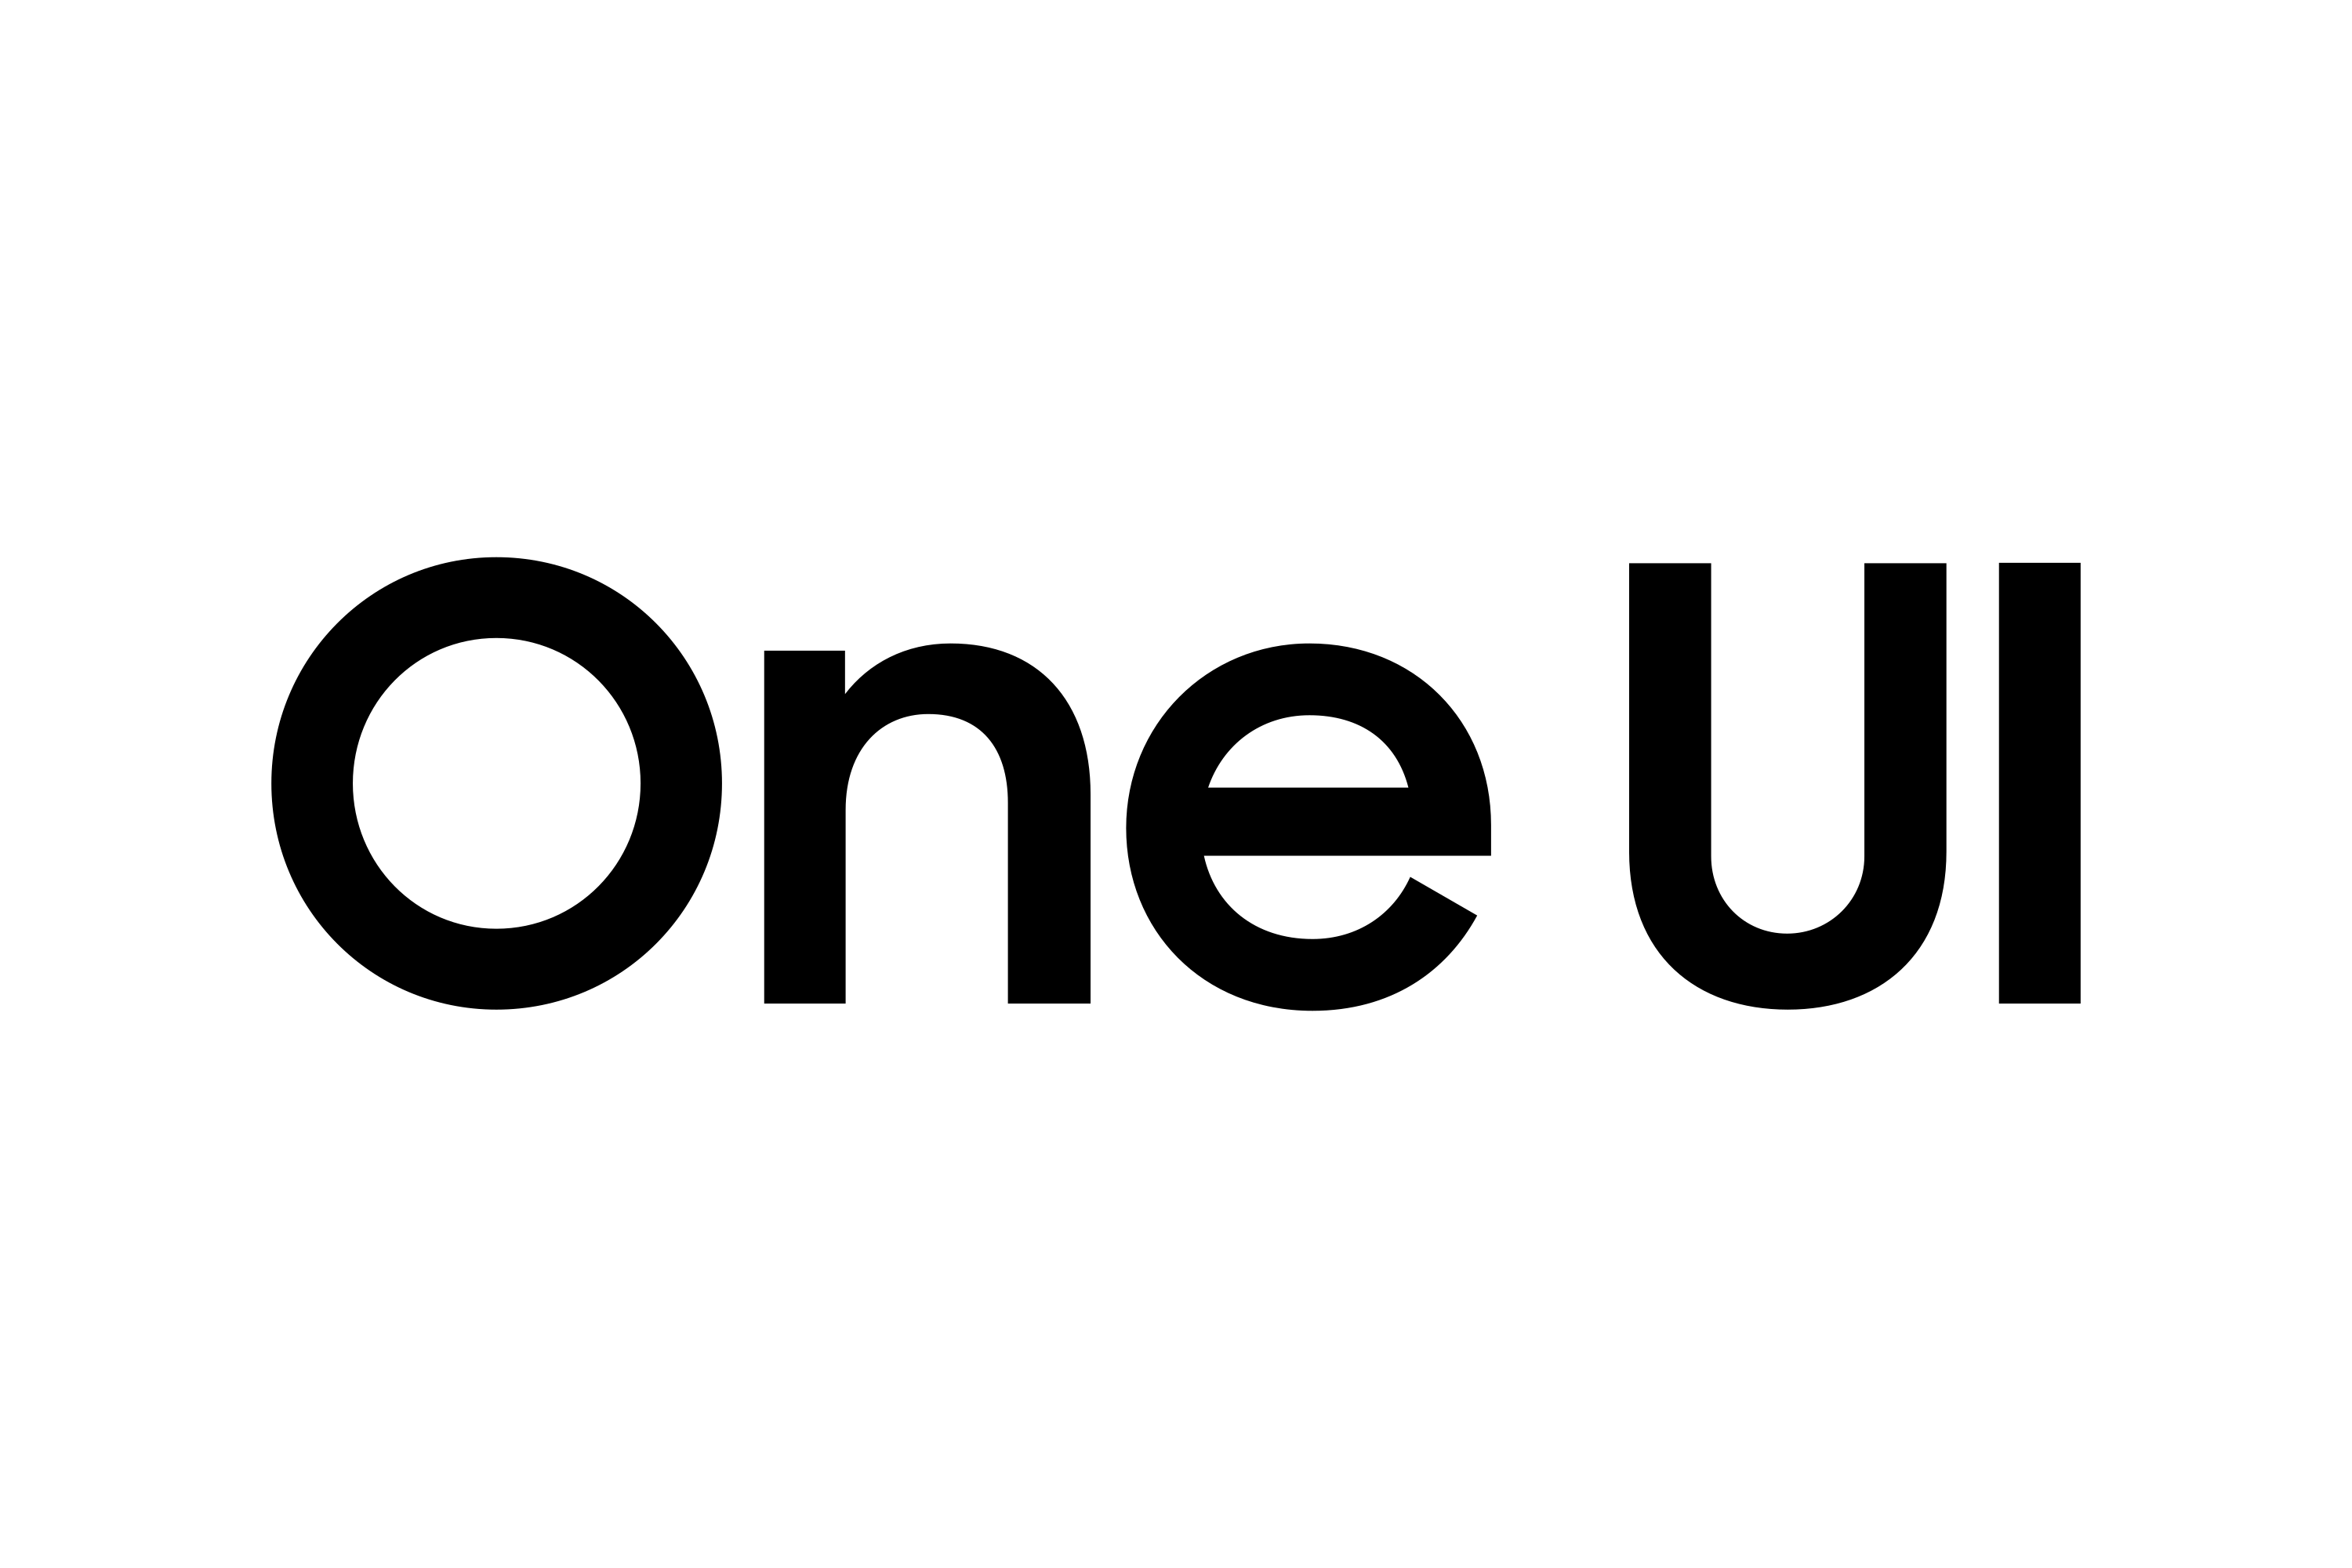 download one ui logo in svg vector or png file format logo wine download one ui logo in svg vector or